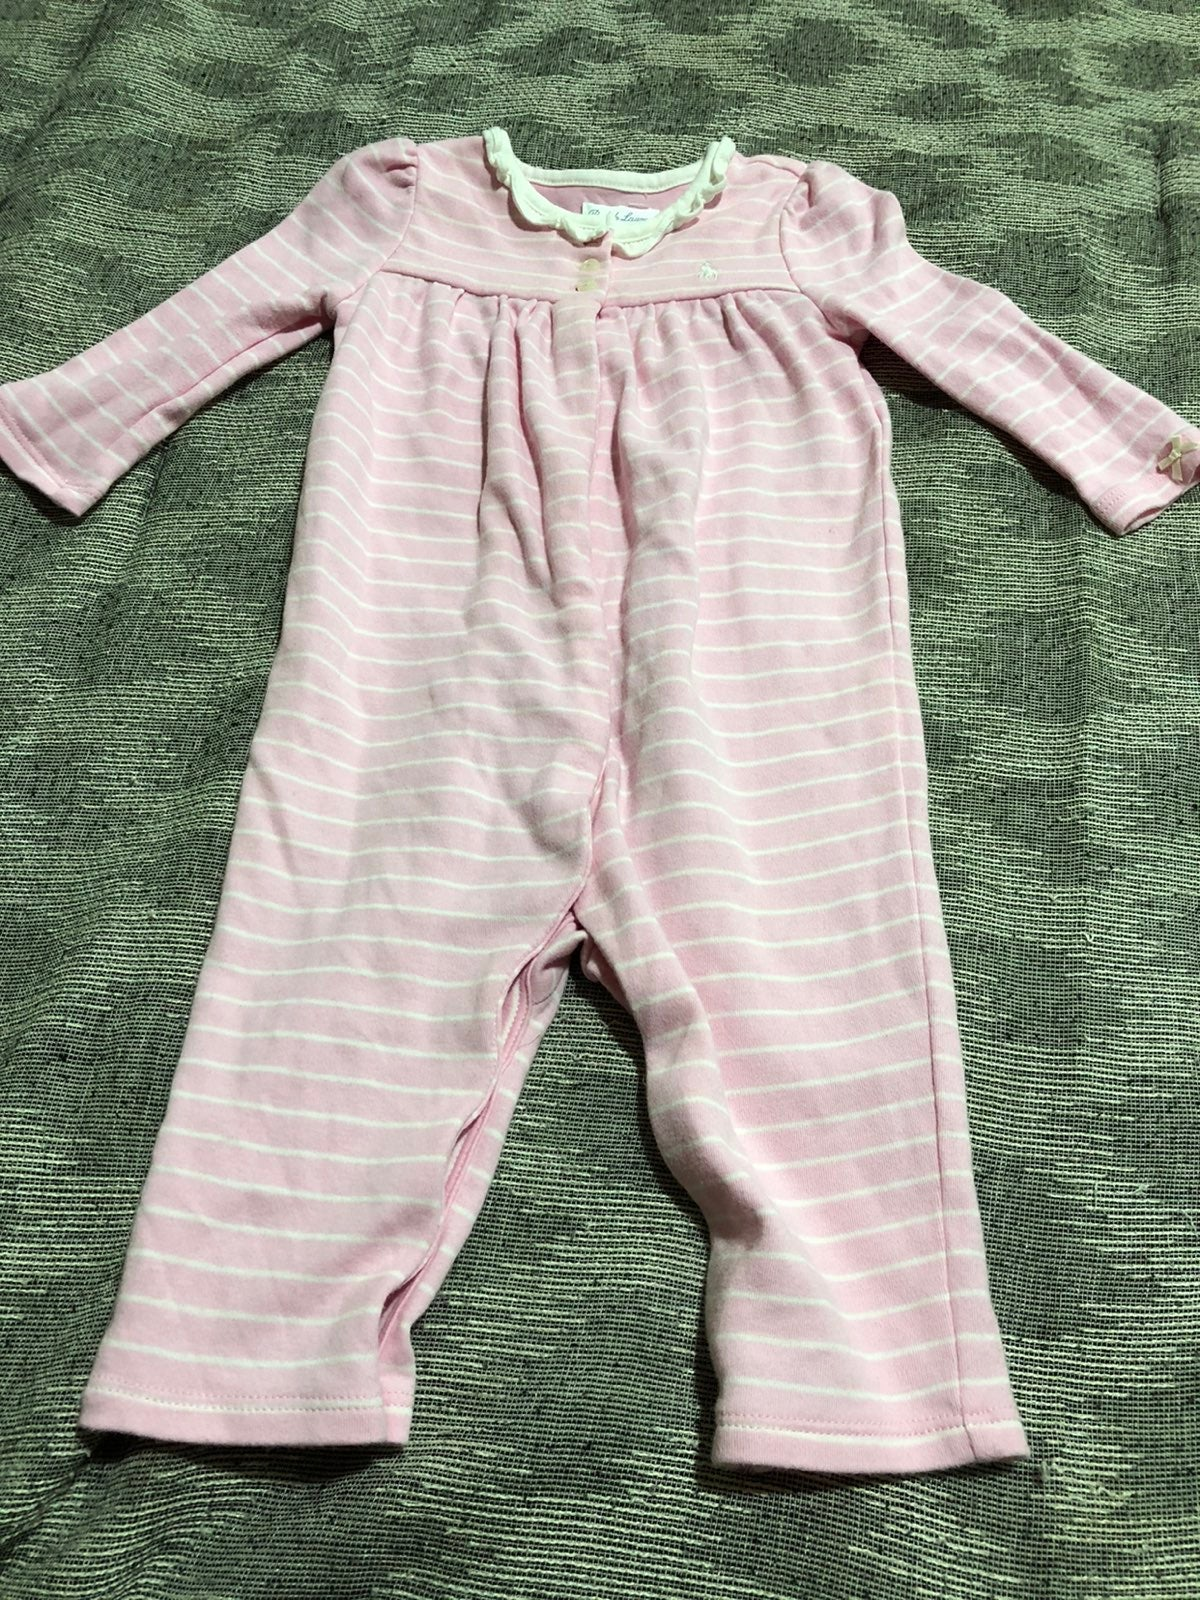 Ralph Lauren Baby Girl Size 9 mth Outfit